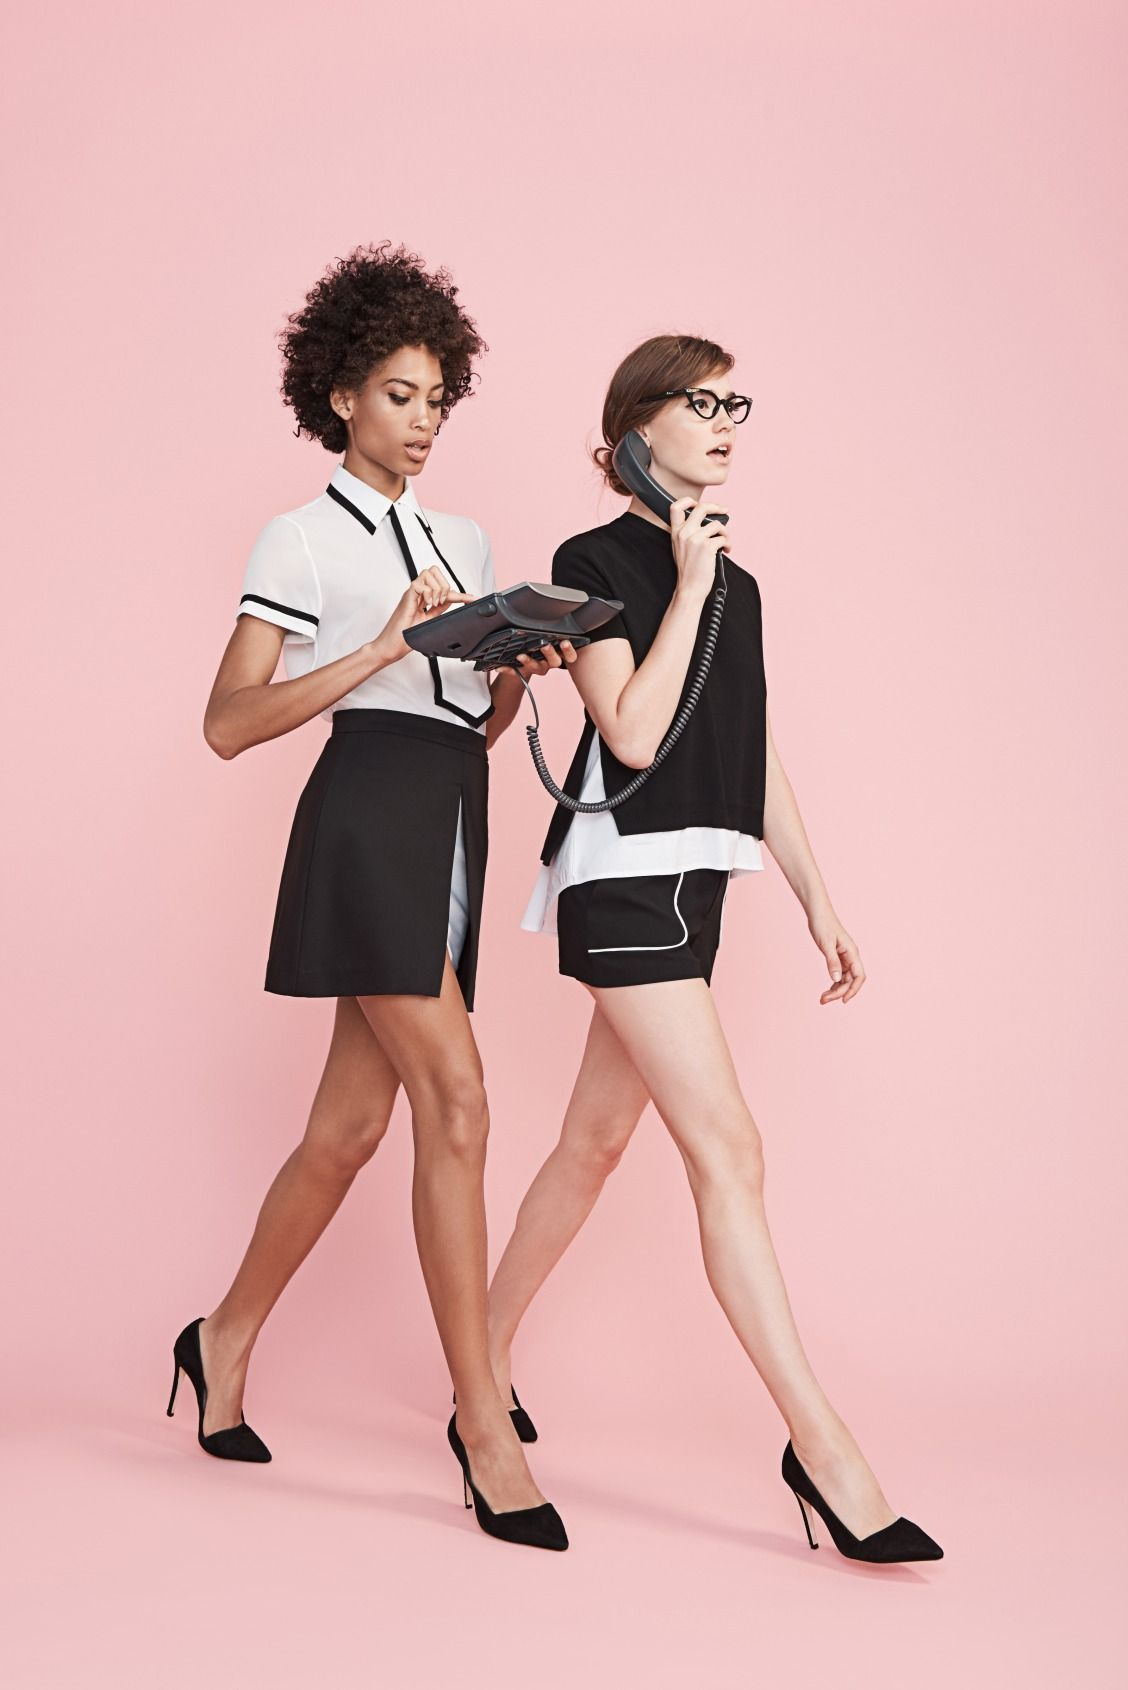 Twinning to work in alice + olivia career! | TO WEAR TO WORK | Pinterest